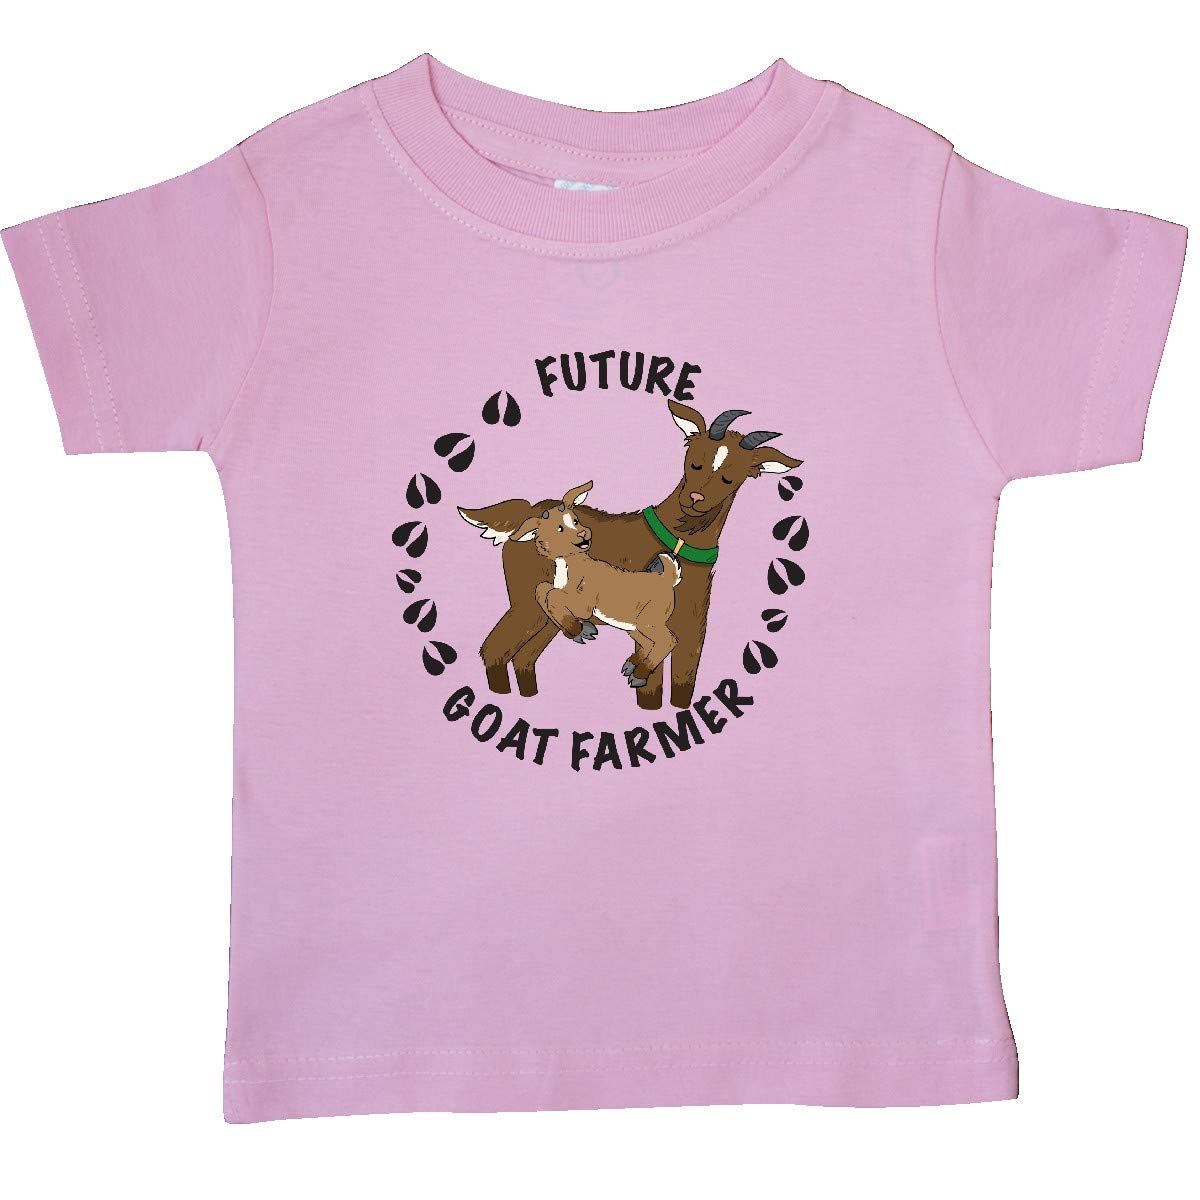 inktastic Future Goat Farmer with Cute Goats and Hoof Prints Baby T-Shirt